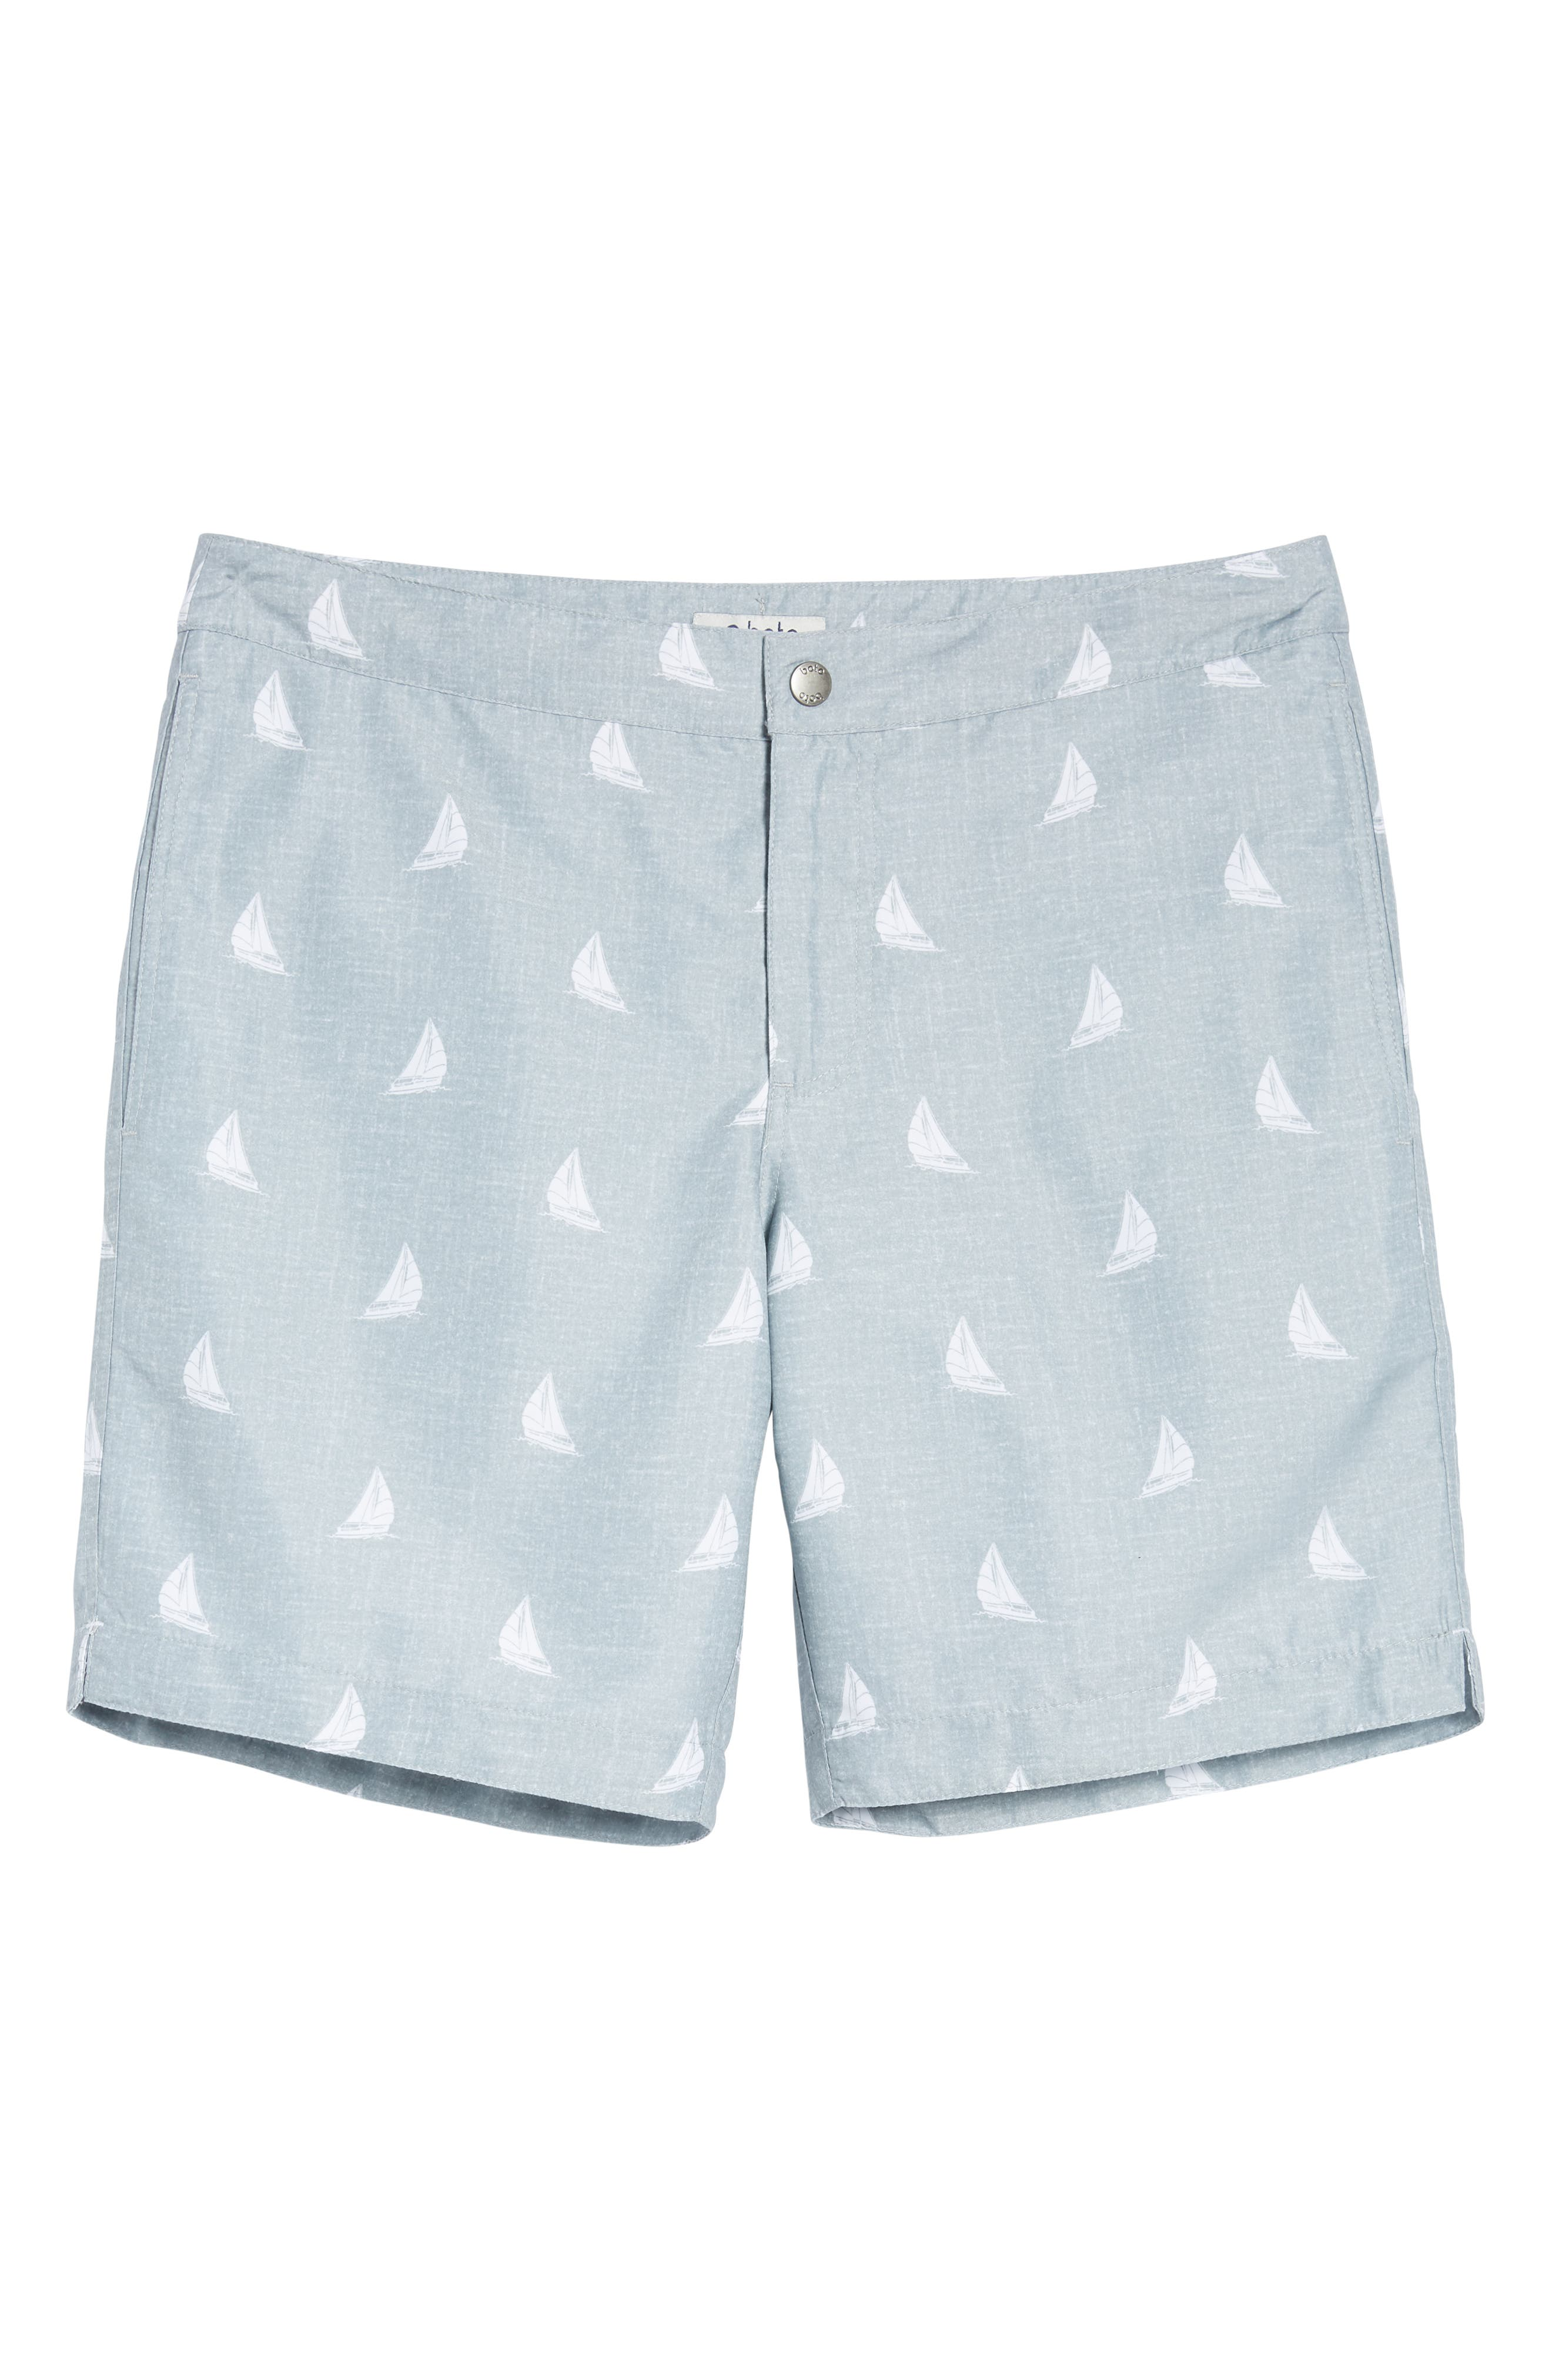 Aruba Slim Fit Swim Trunks,                             Alternate thumbnail 6, color,                             HEATHERED GREY SAILBOATS